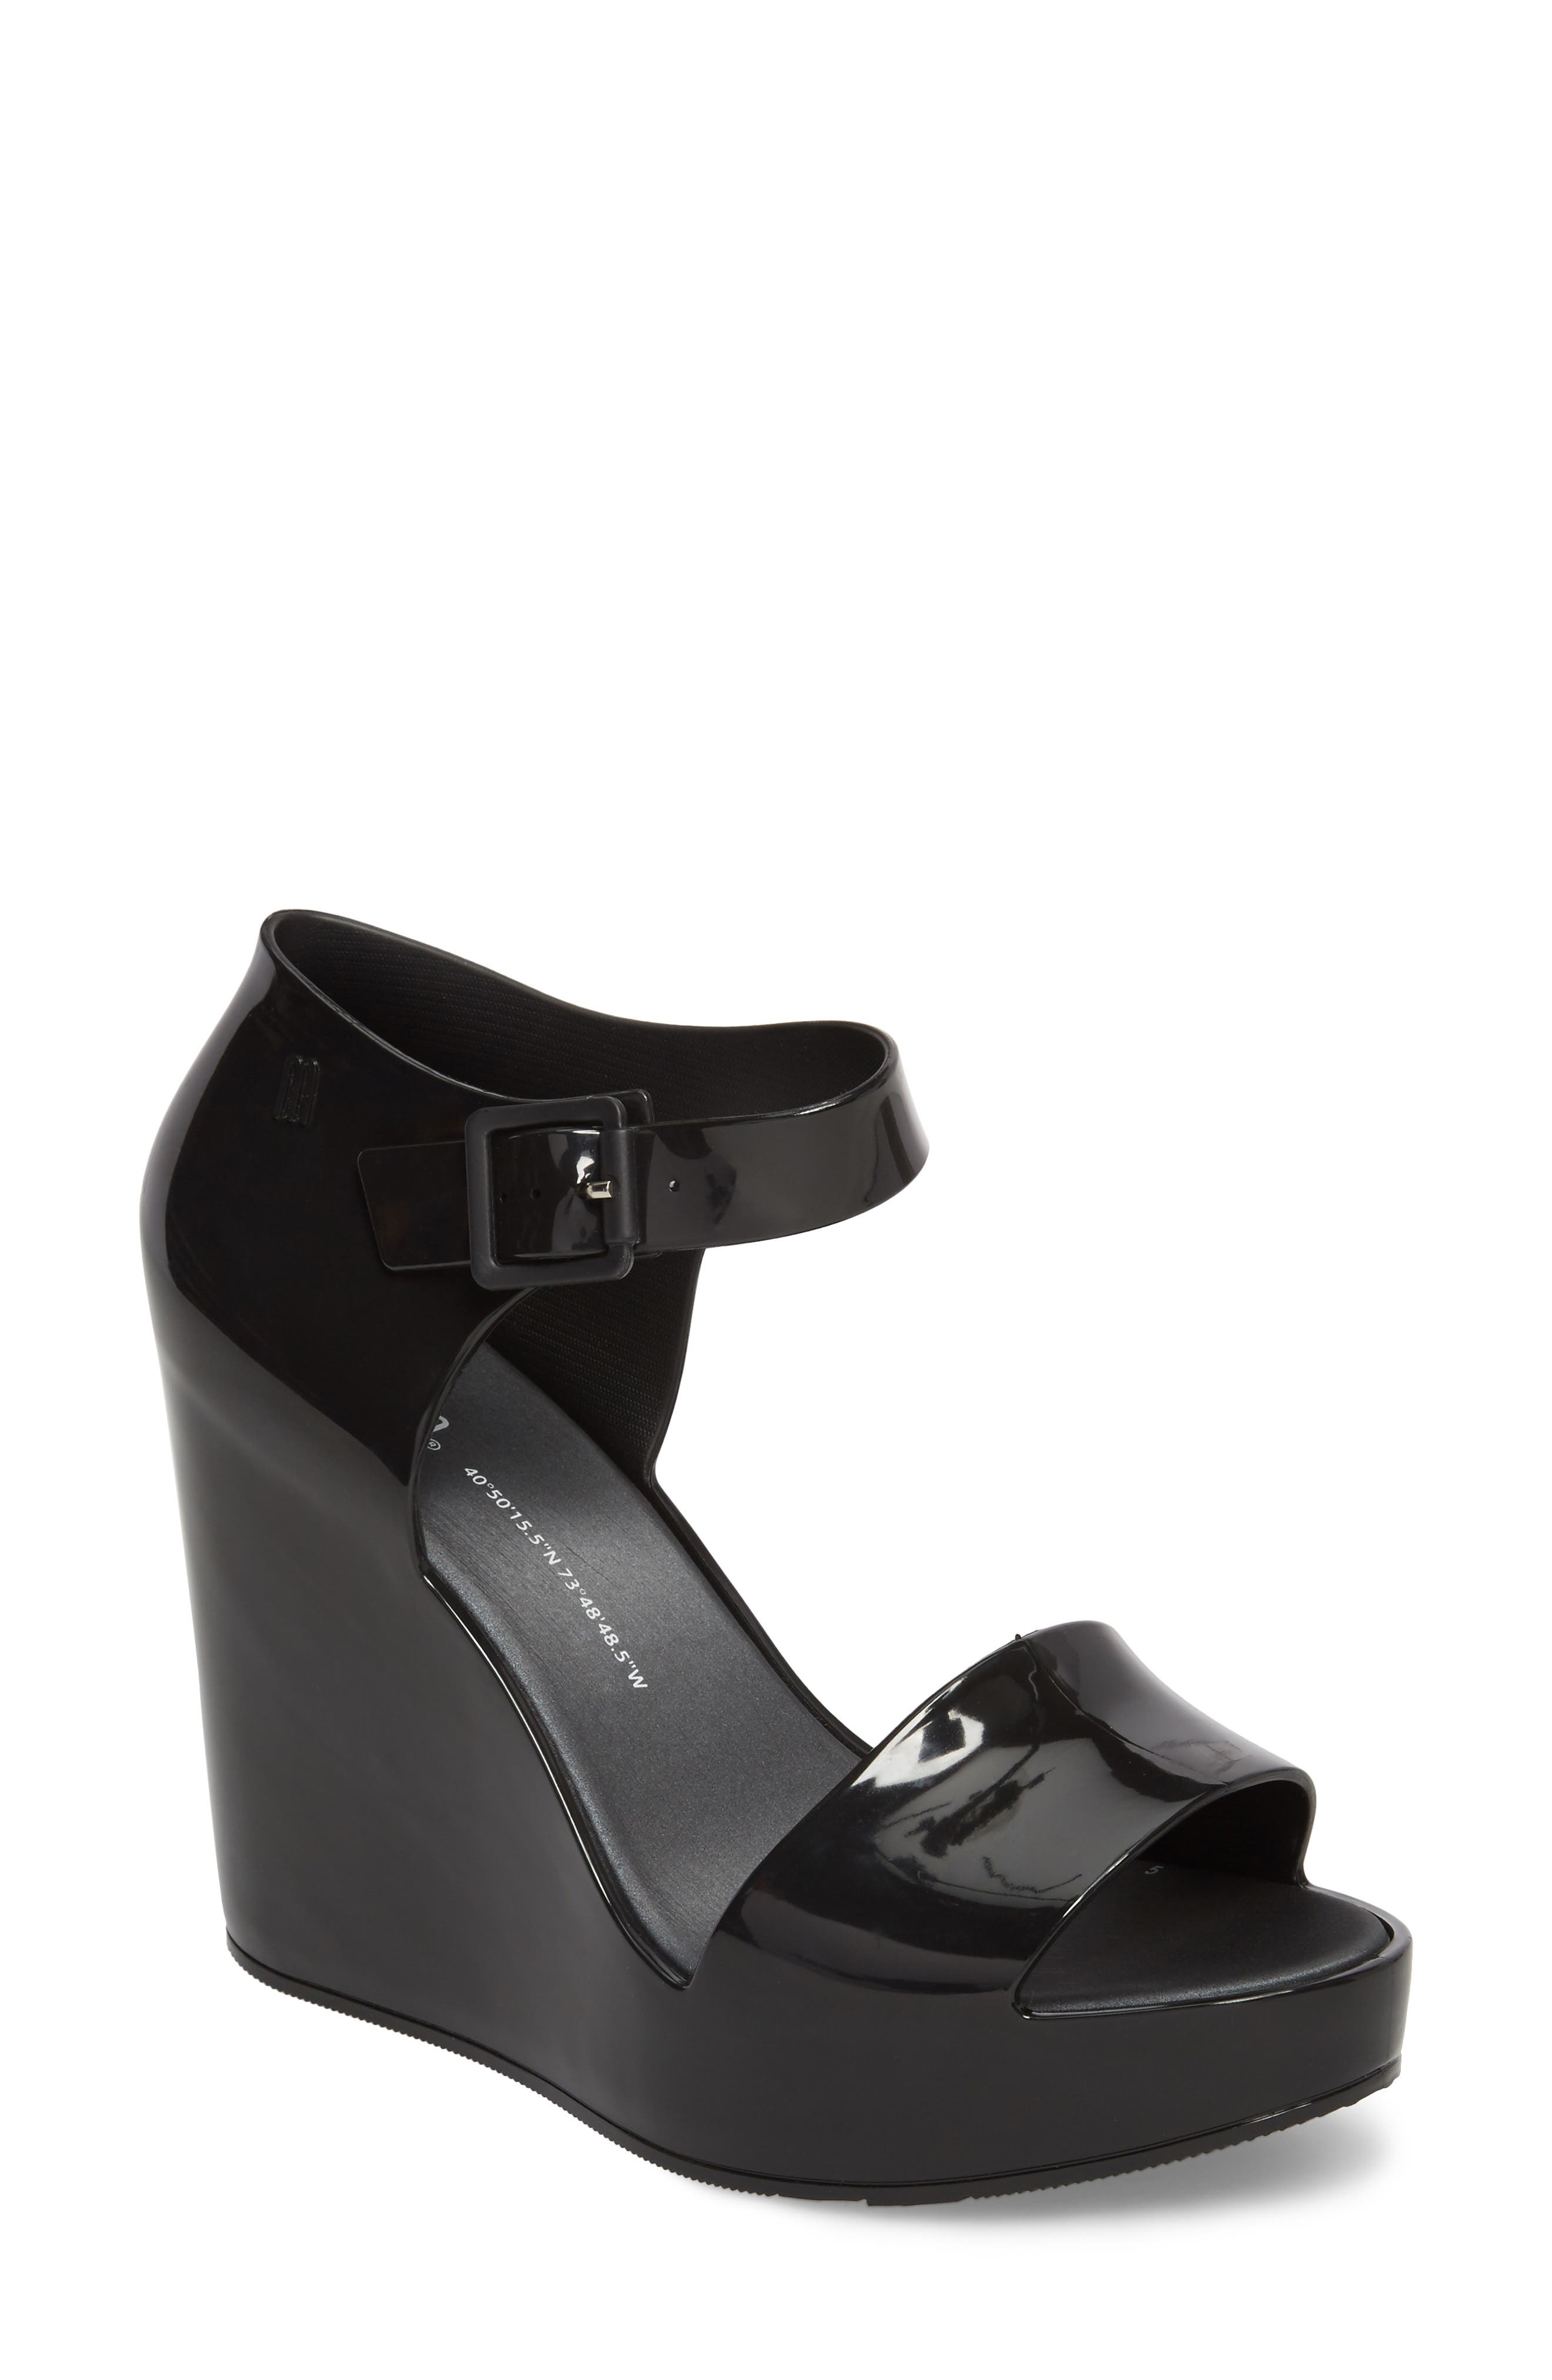 Mar Platform Wedge Sandal,                             Main thumbnail 1, color,                             BLACK